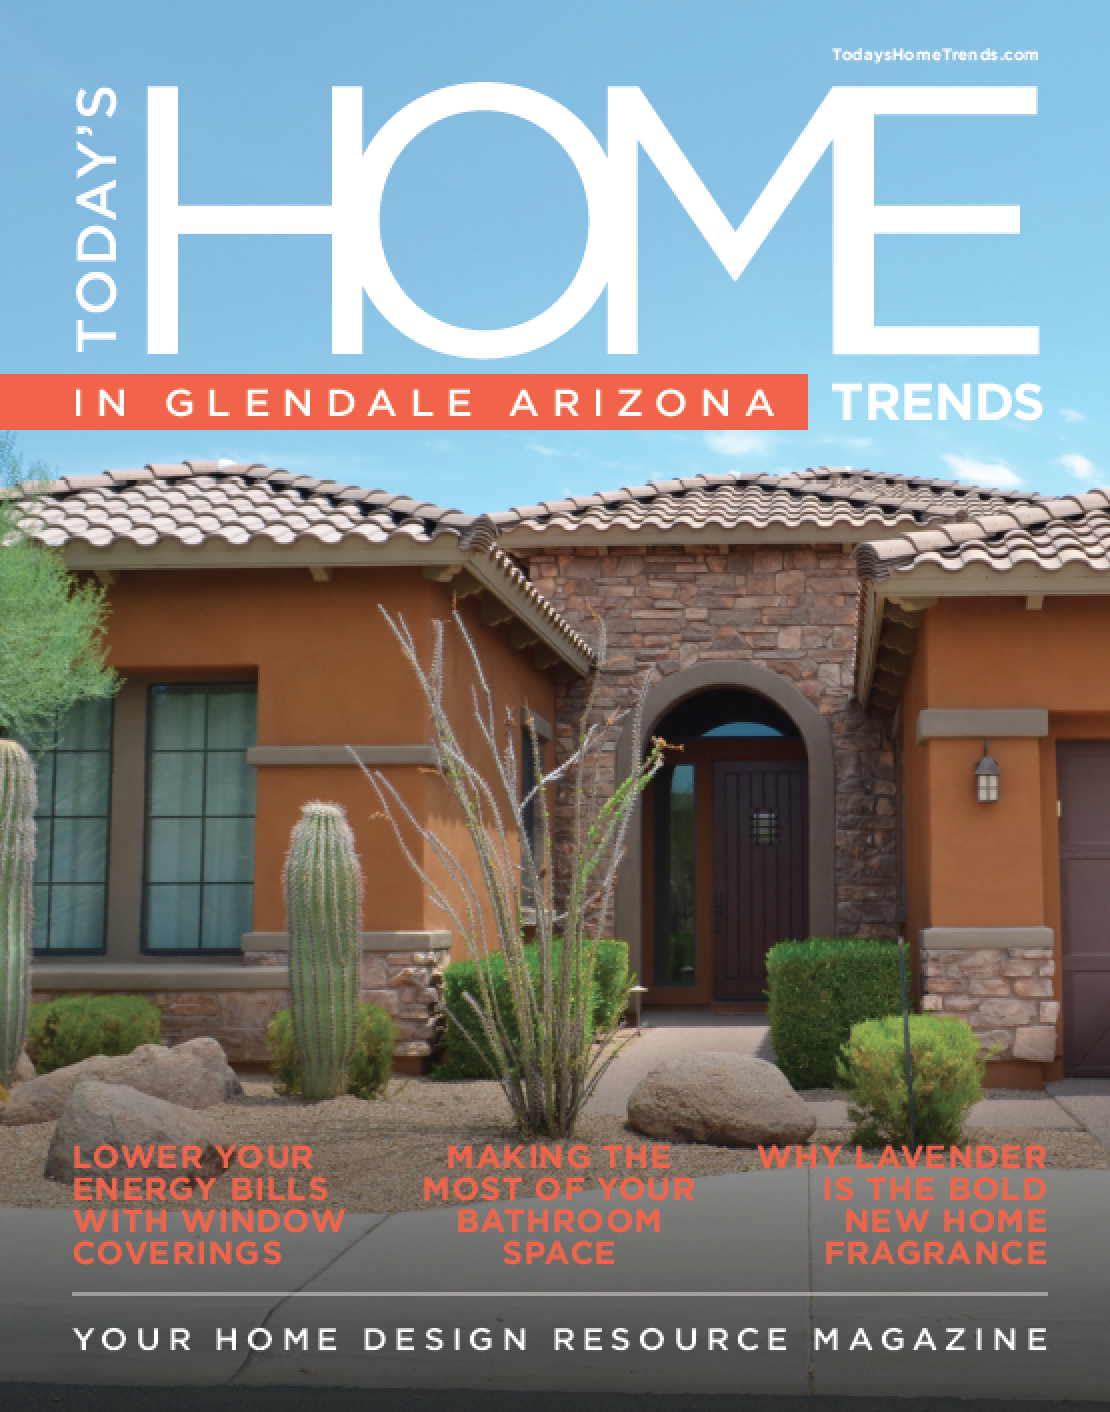 Today's Home Trends Magazine